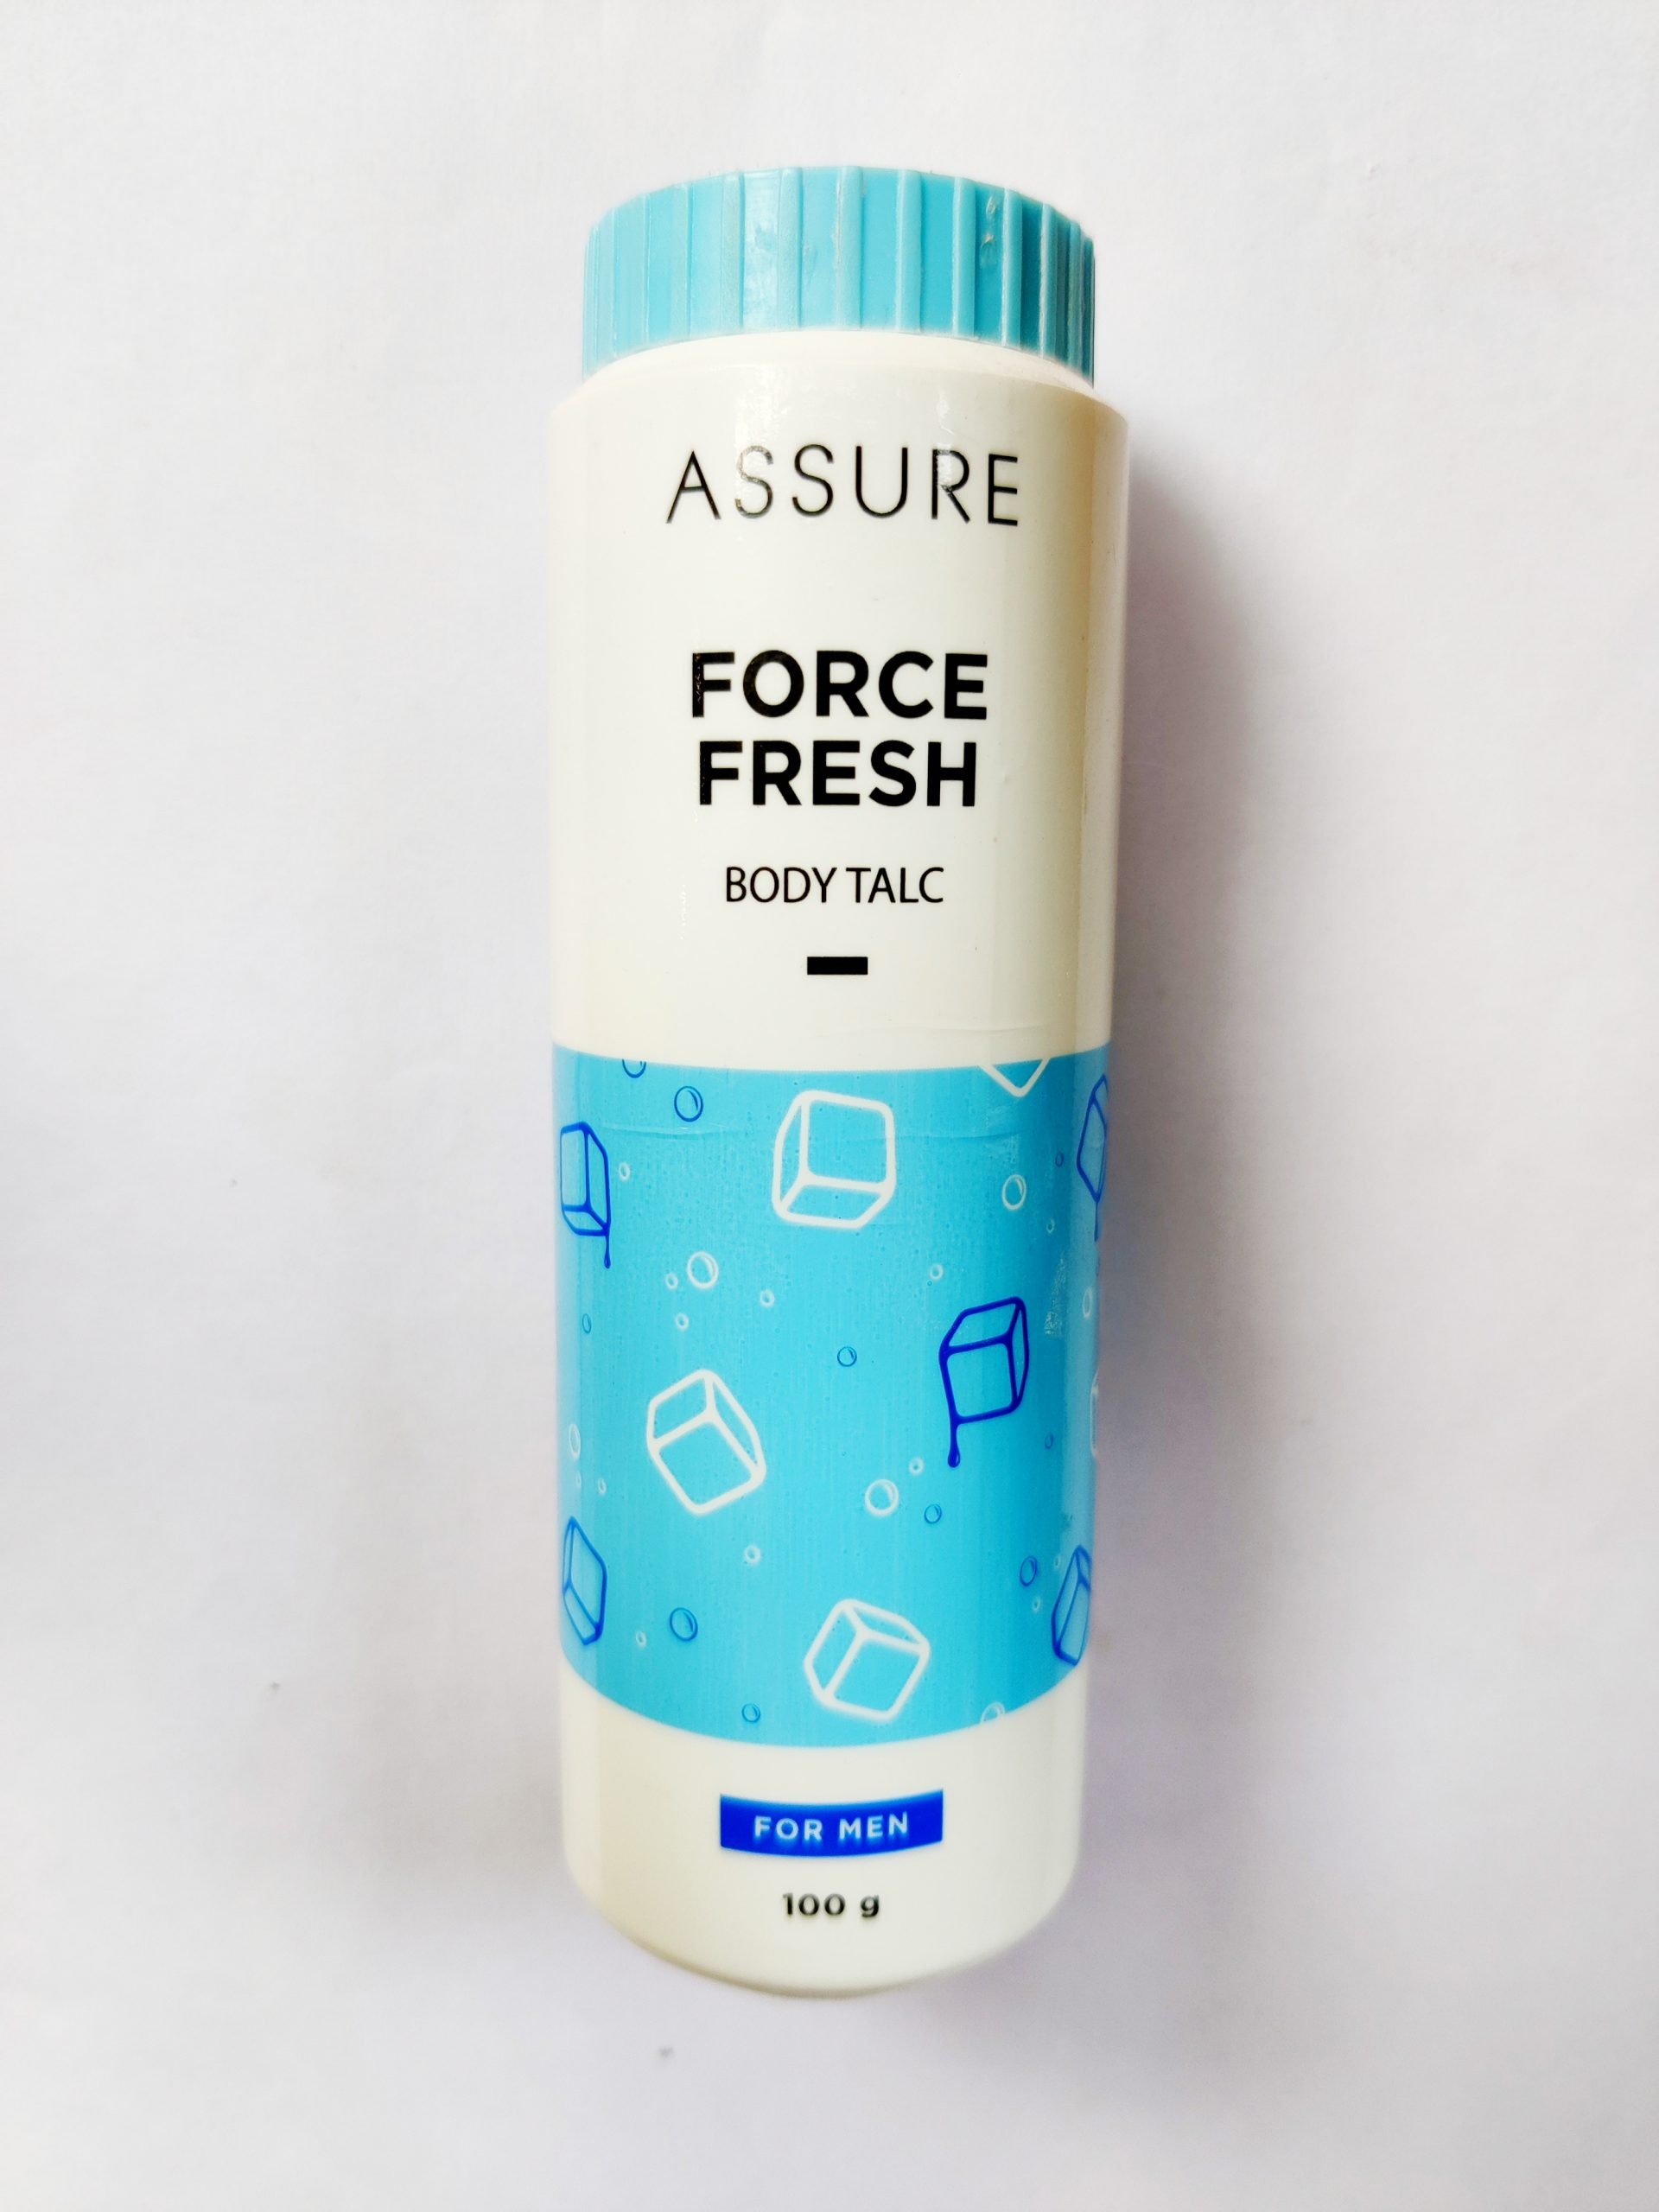 A cosmetic product